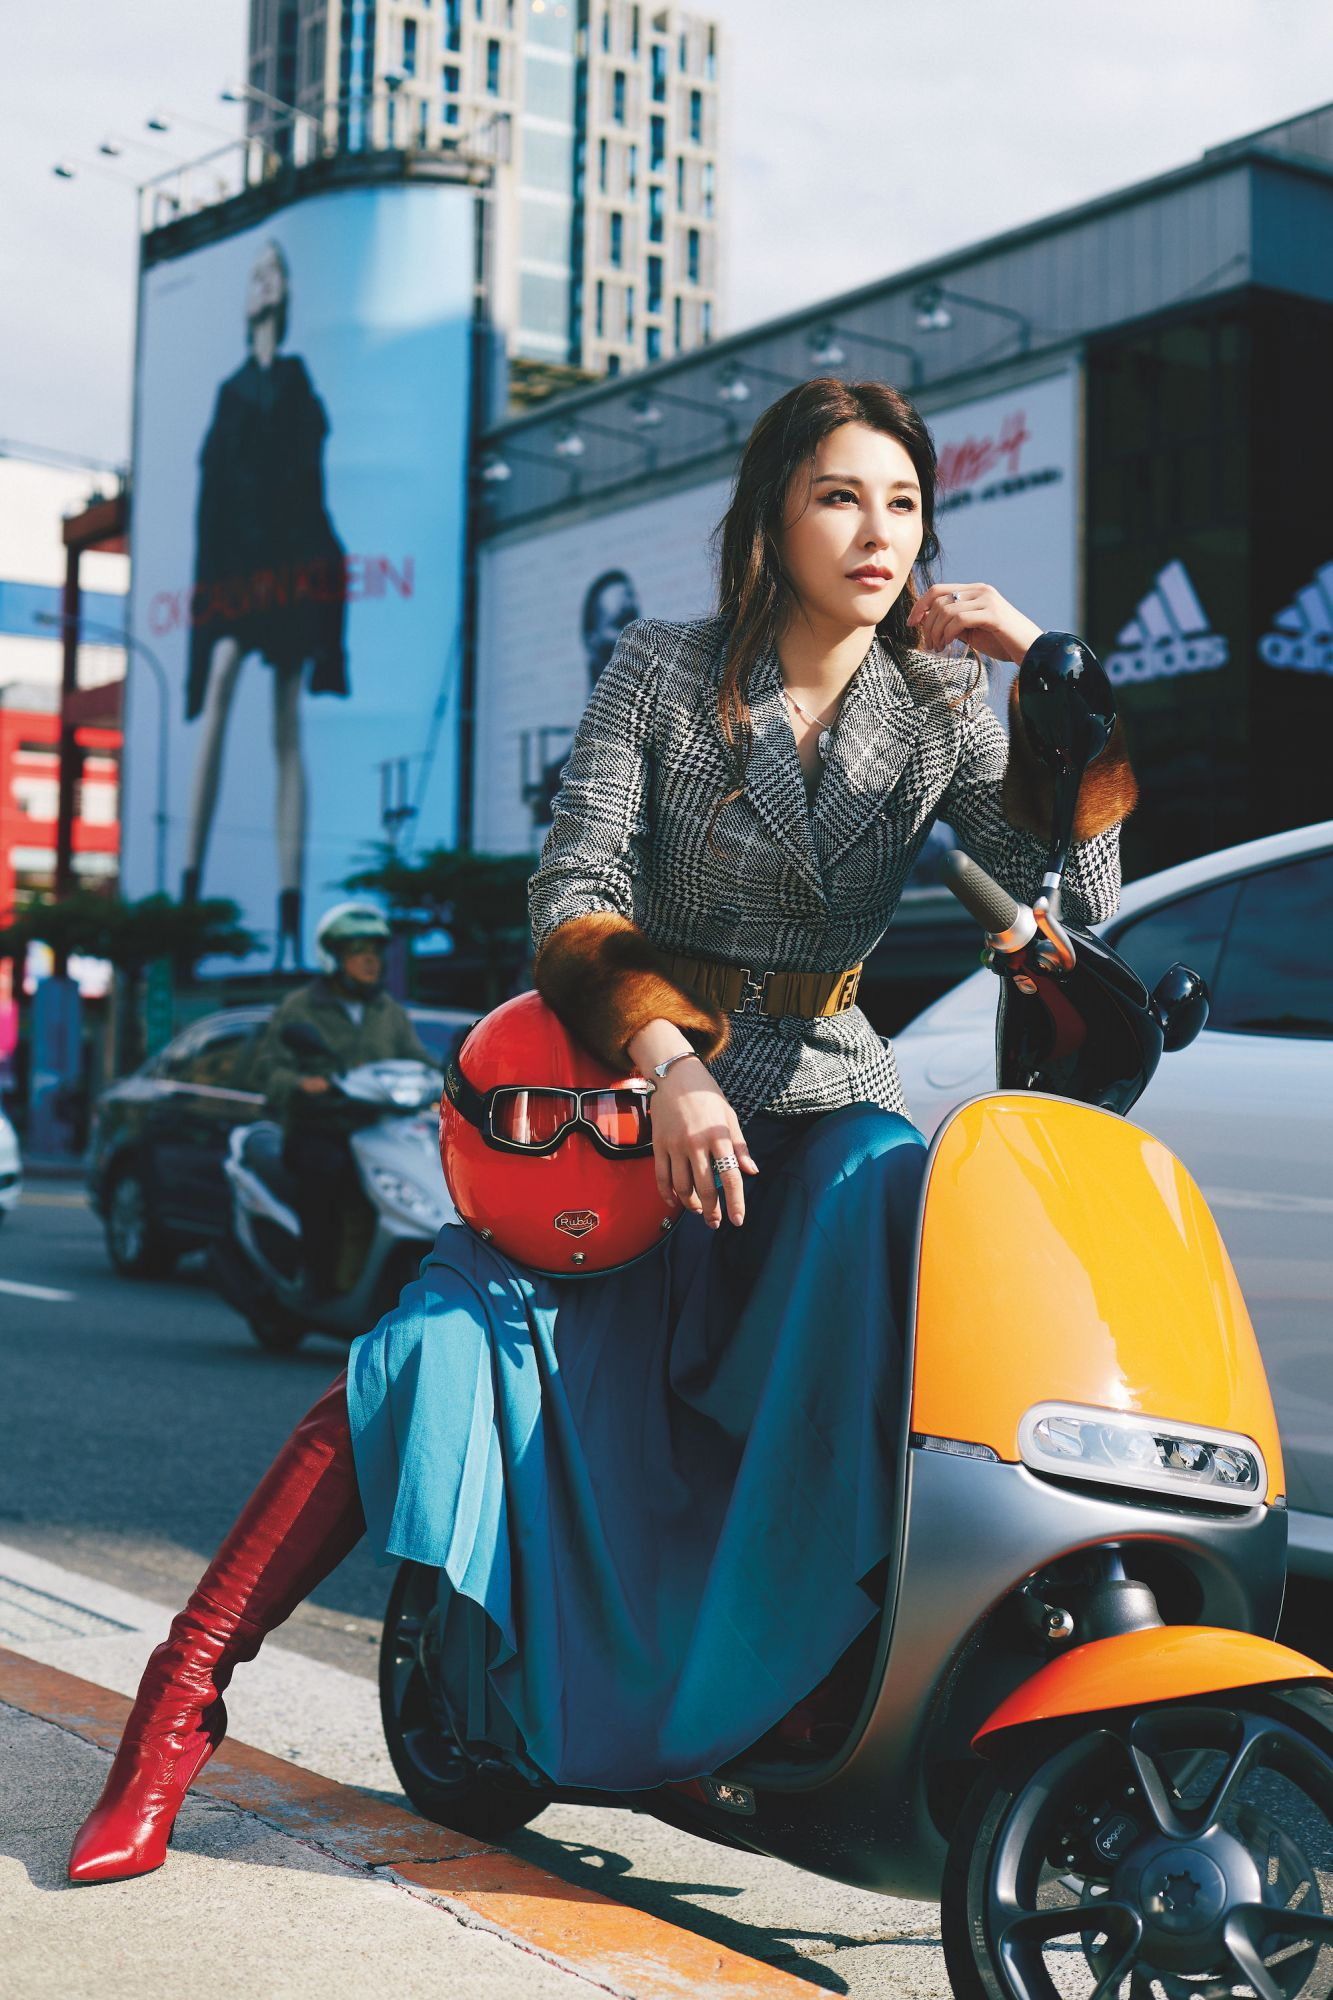 Source: Kenny Yang for Taiwan Tatler